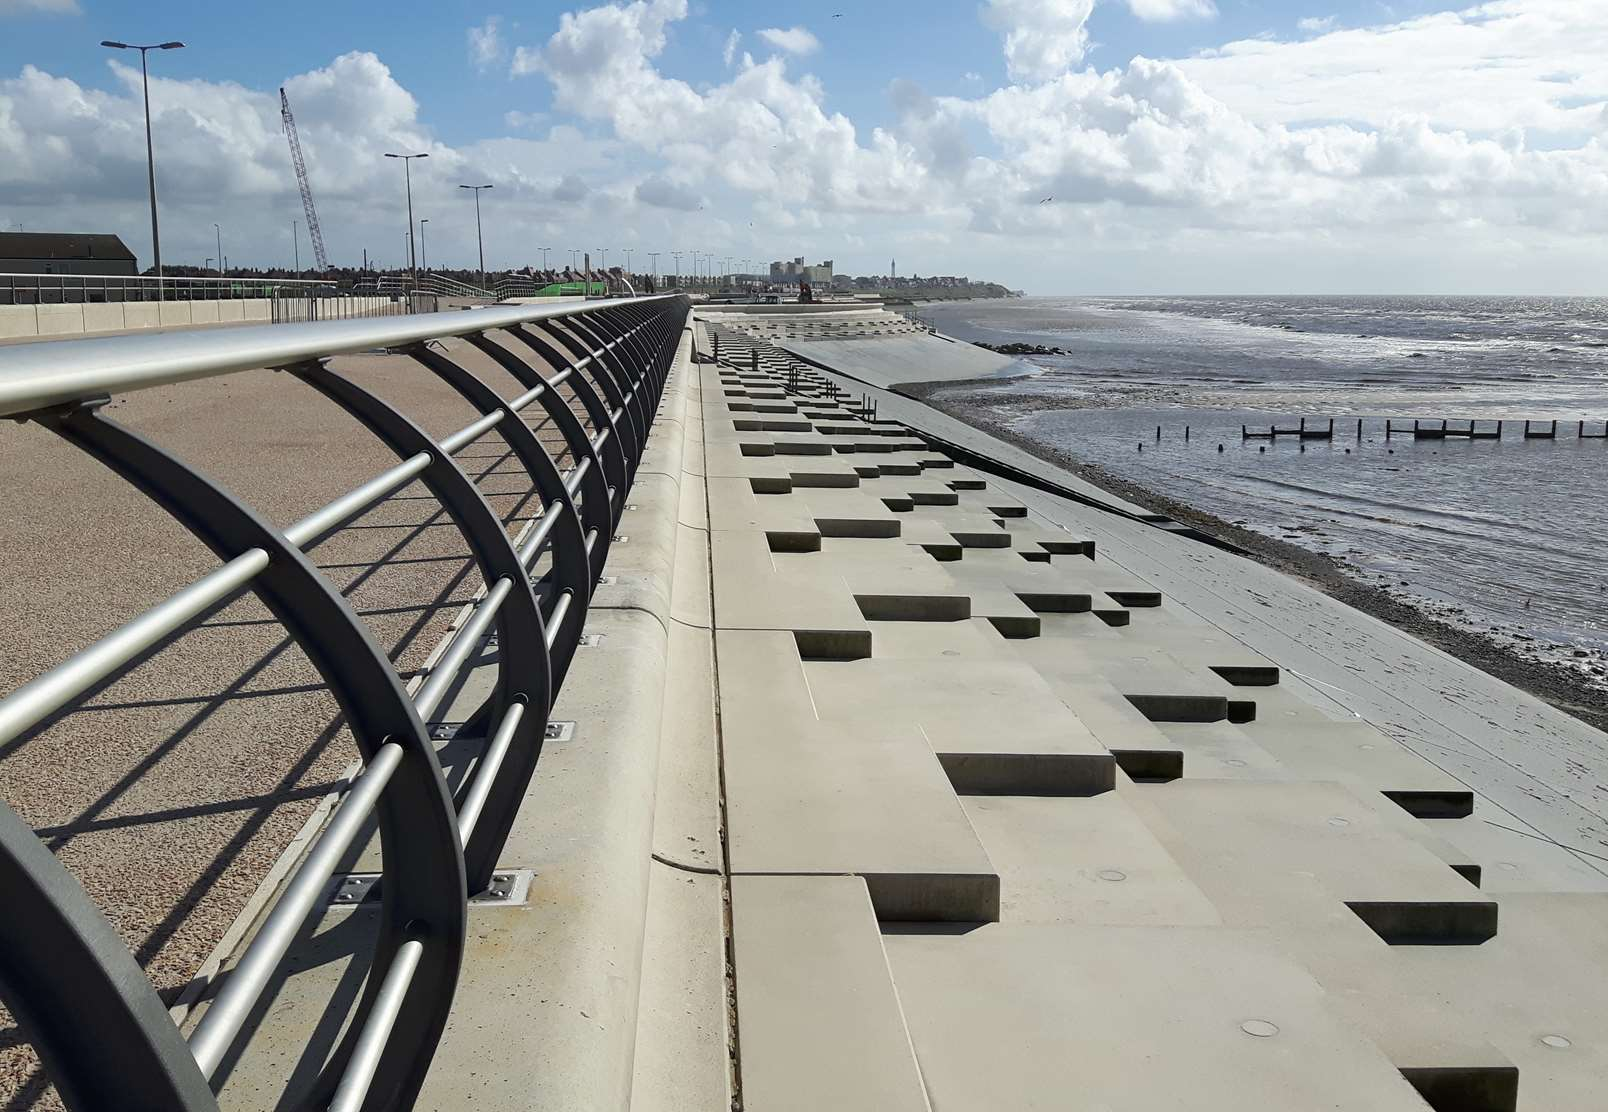 Flood defences at Anchorsholme